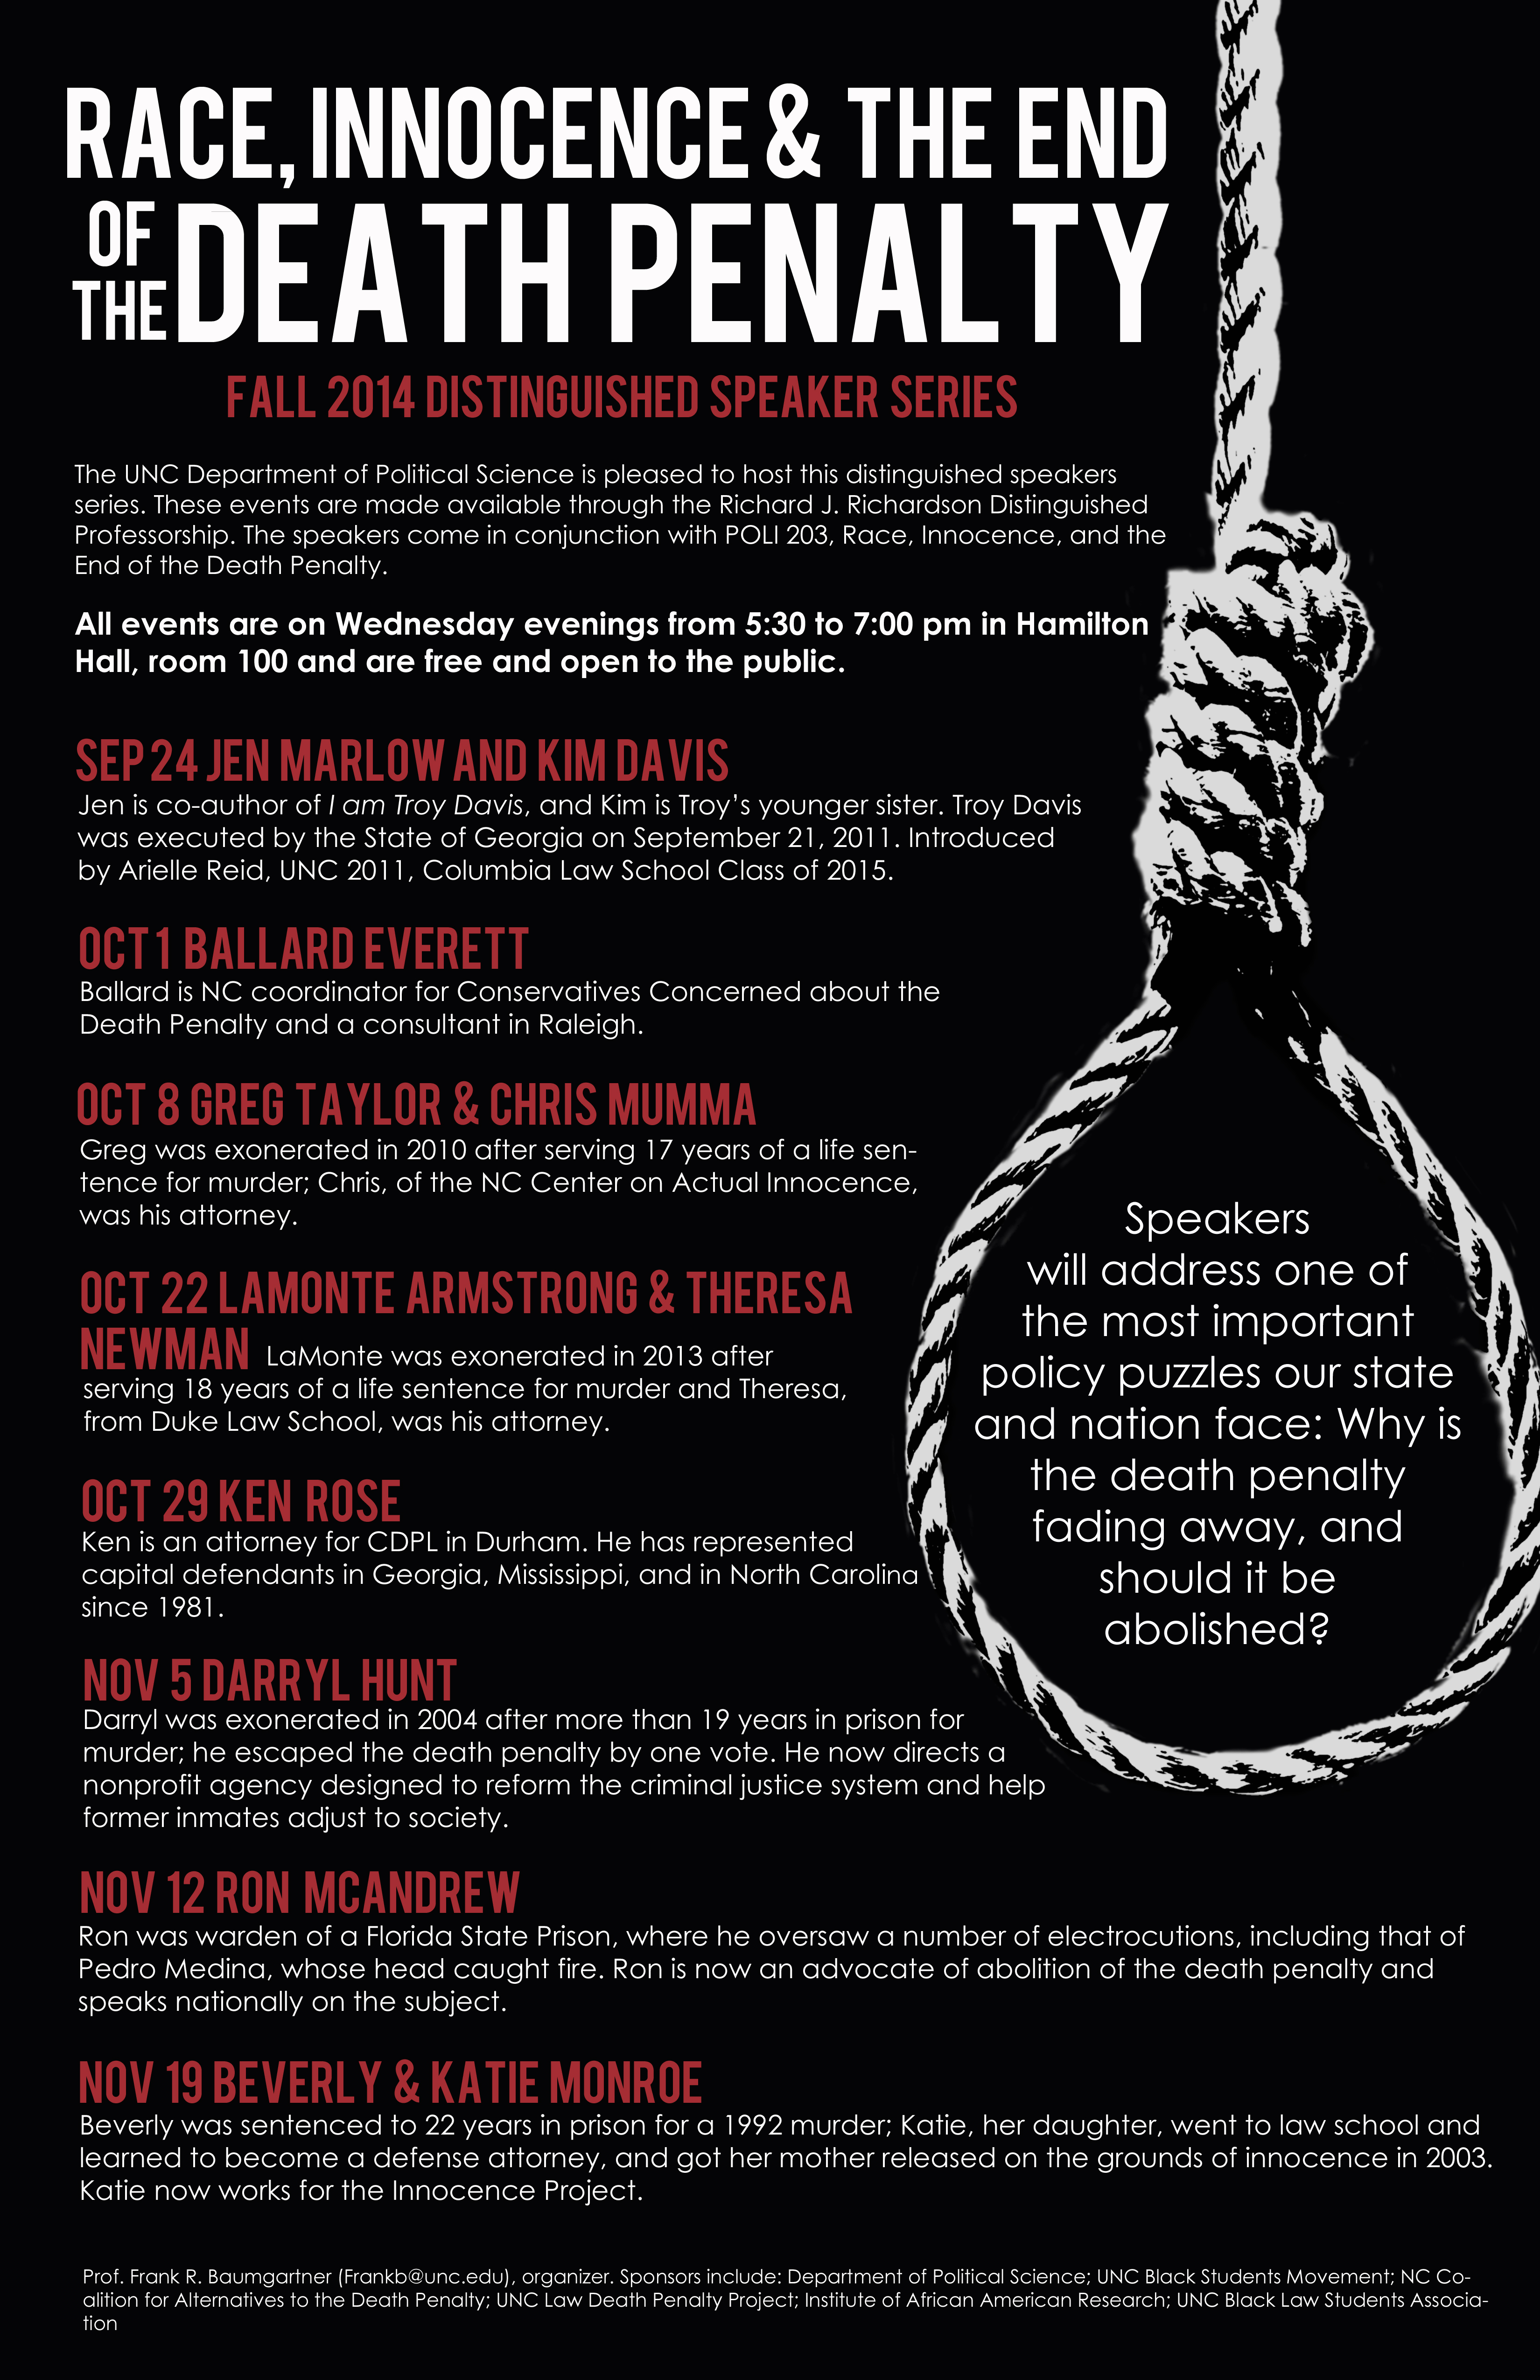 an analysis of death and justice how capital punishment affirms life Capital punishment cheapens the value of human life punishment is a measure of our respect for the victims for example, koch observes that lowering punishment for sexual assault lowers our respect for the victims of these crimes.